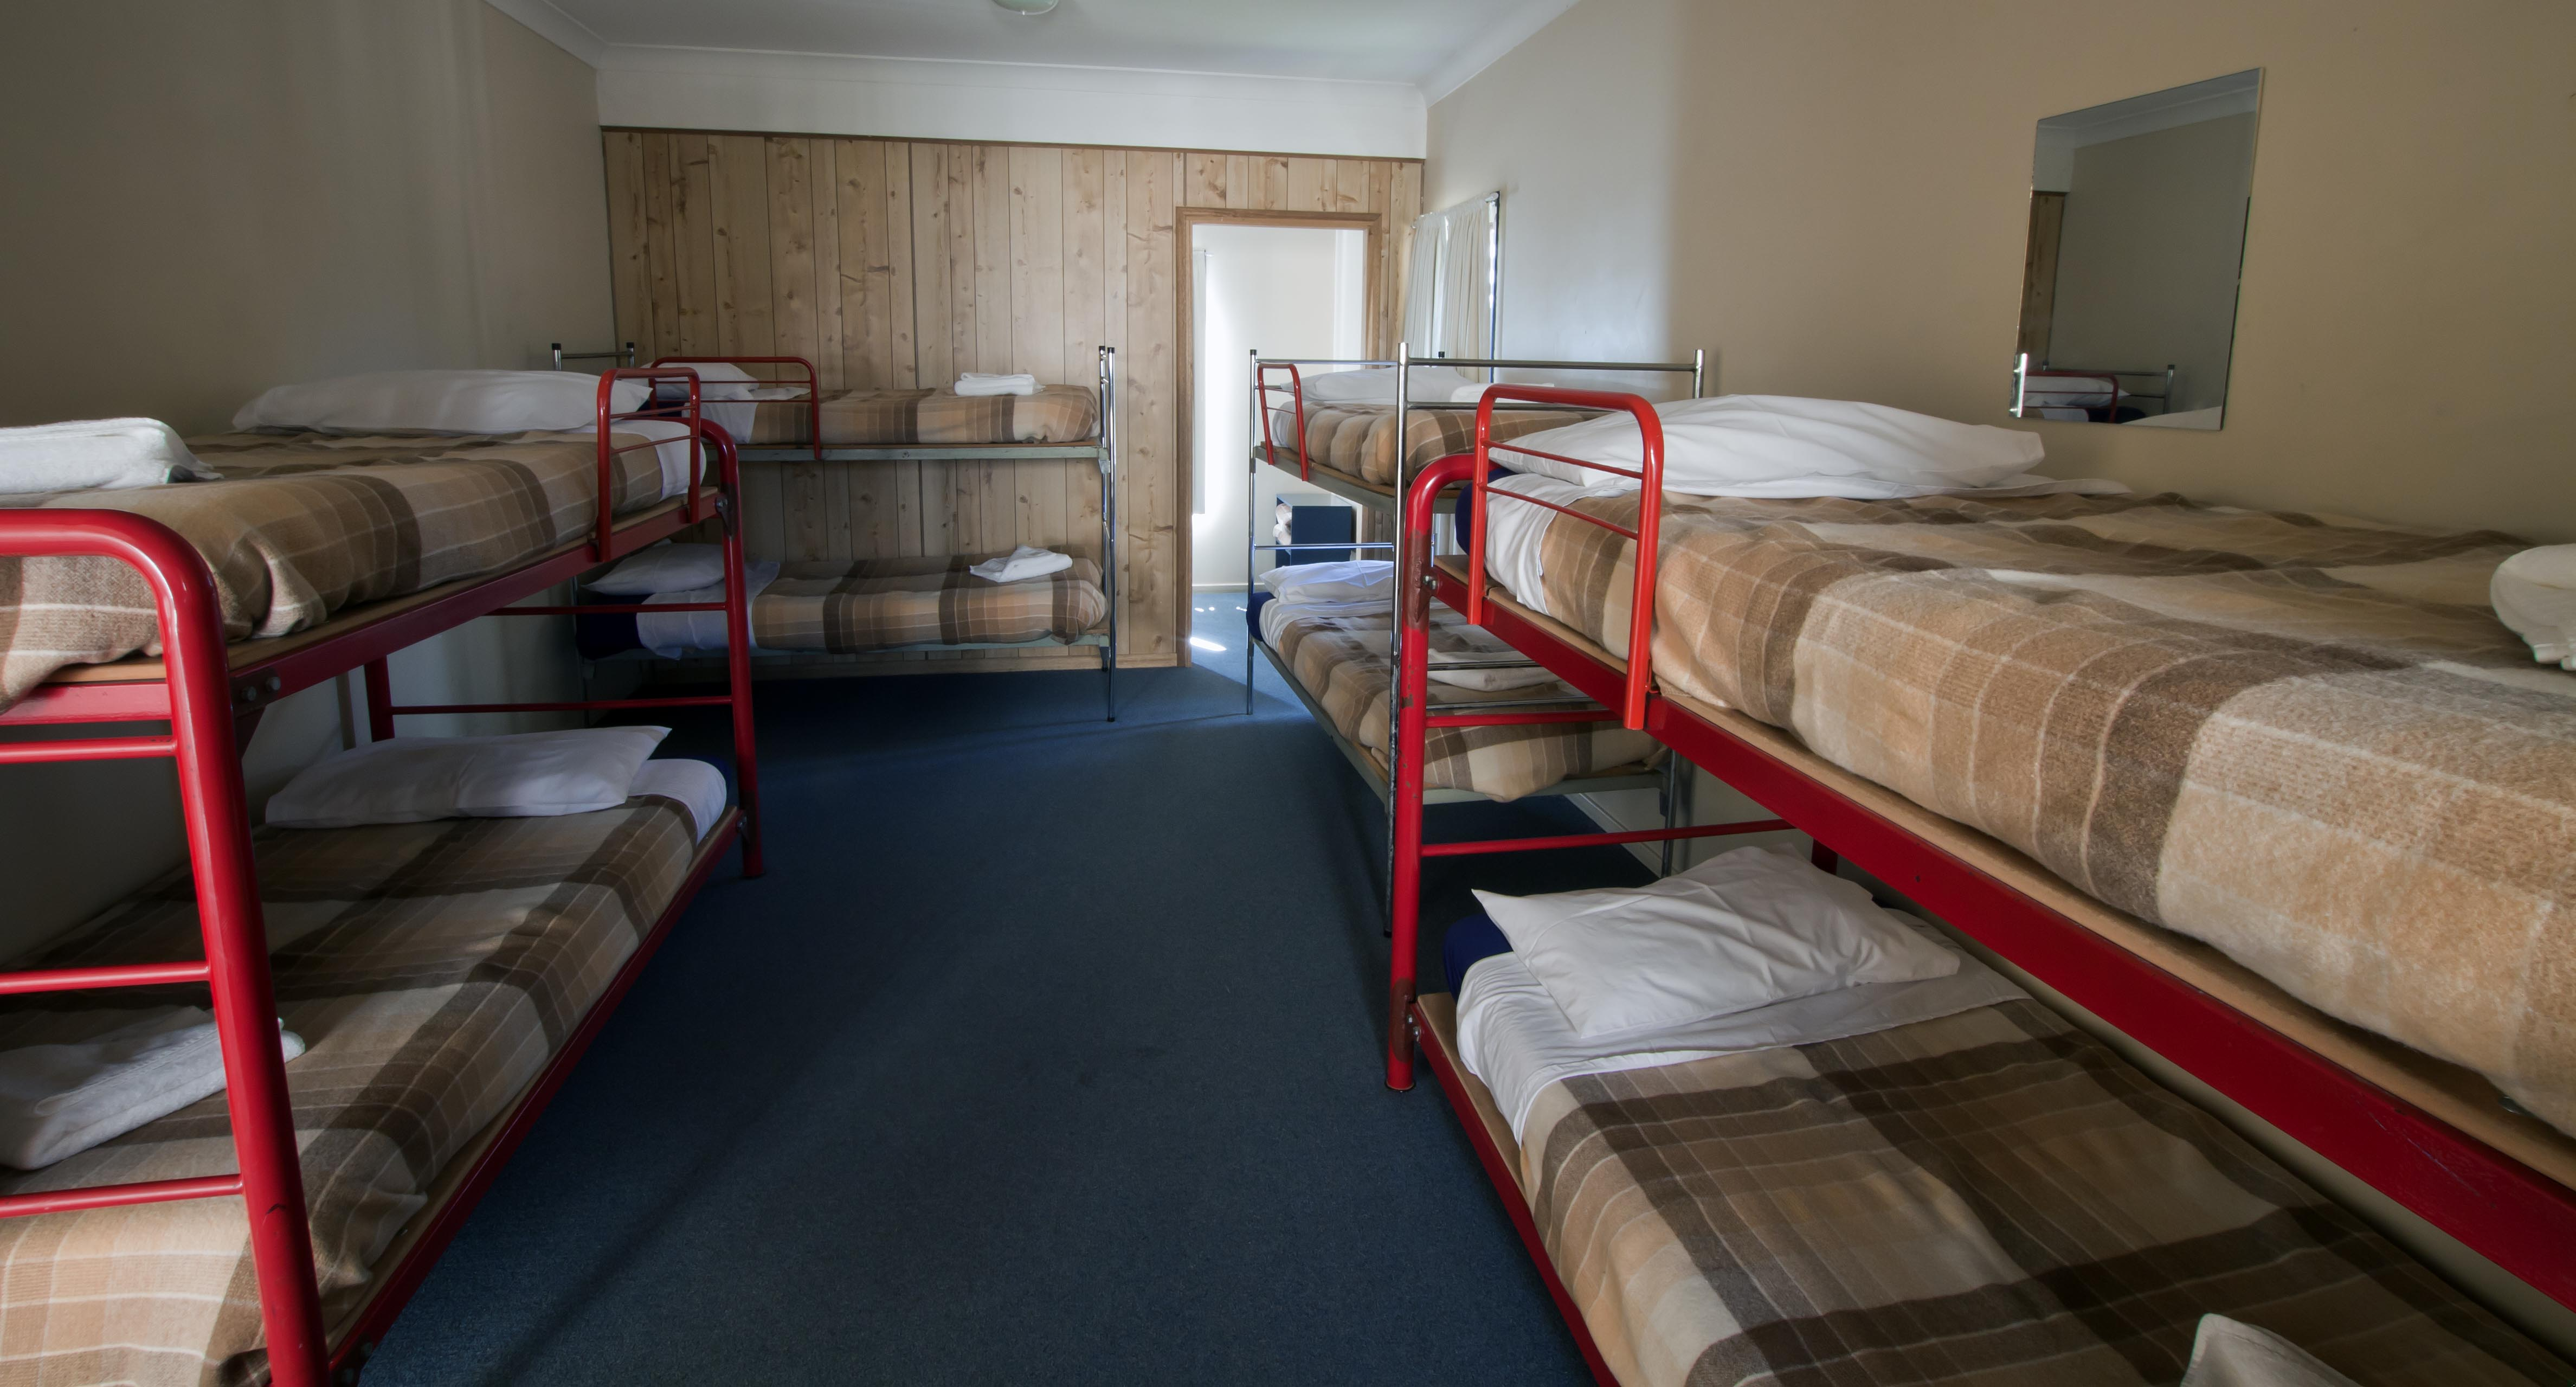 Comfortable dormitory style lodging